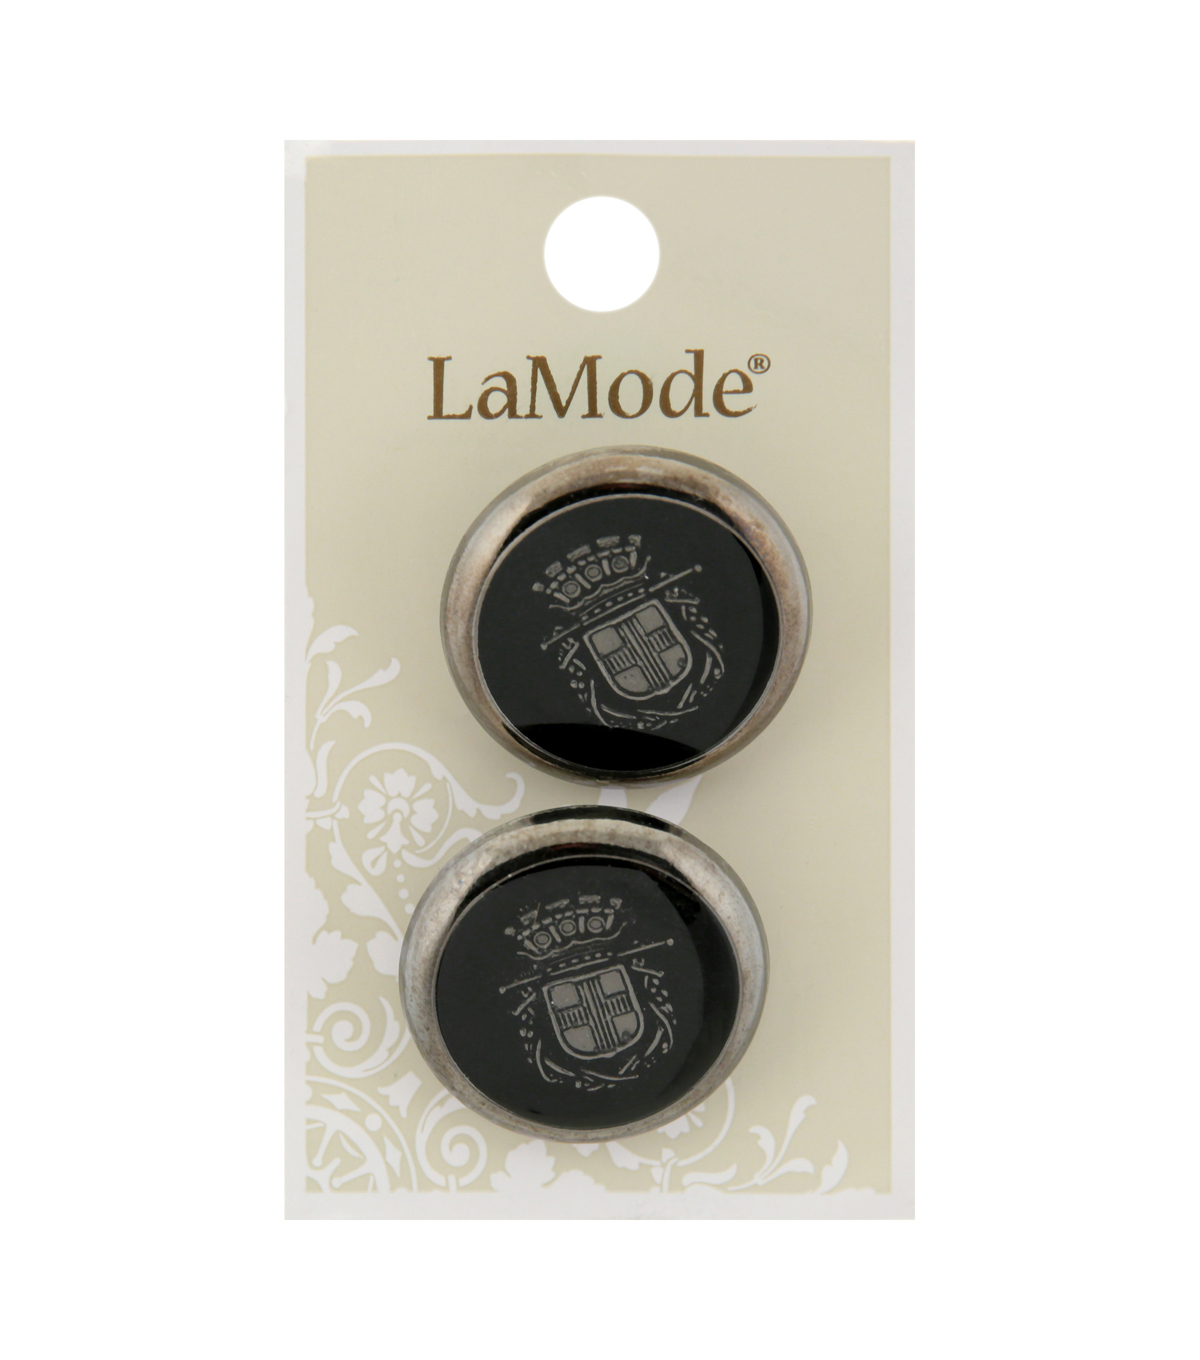 La Mode 2 pk 27 mm Shank Buttons-Black Epoxy with Silver Crest